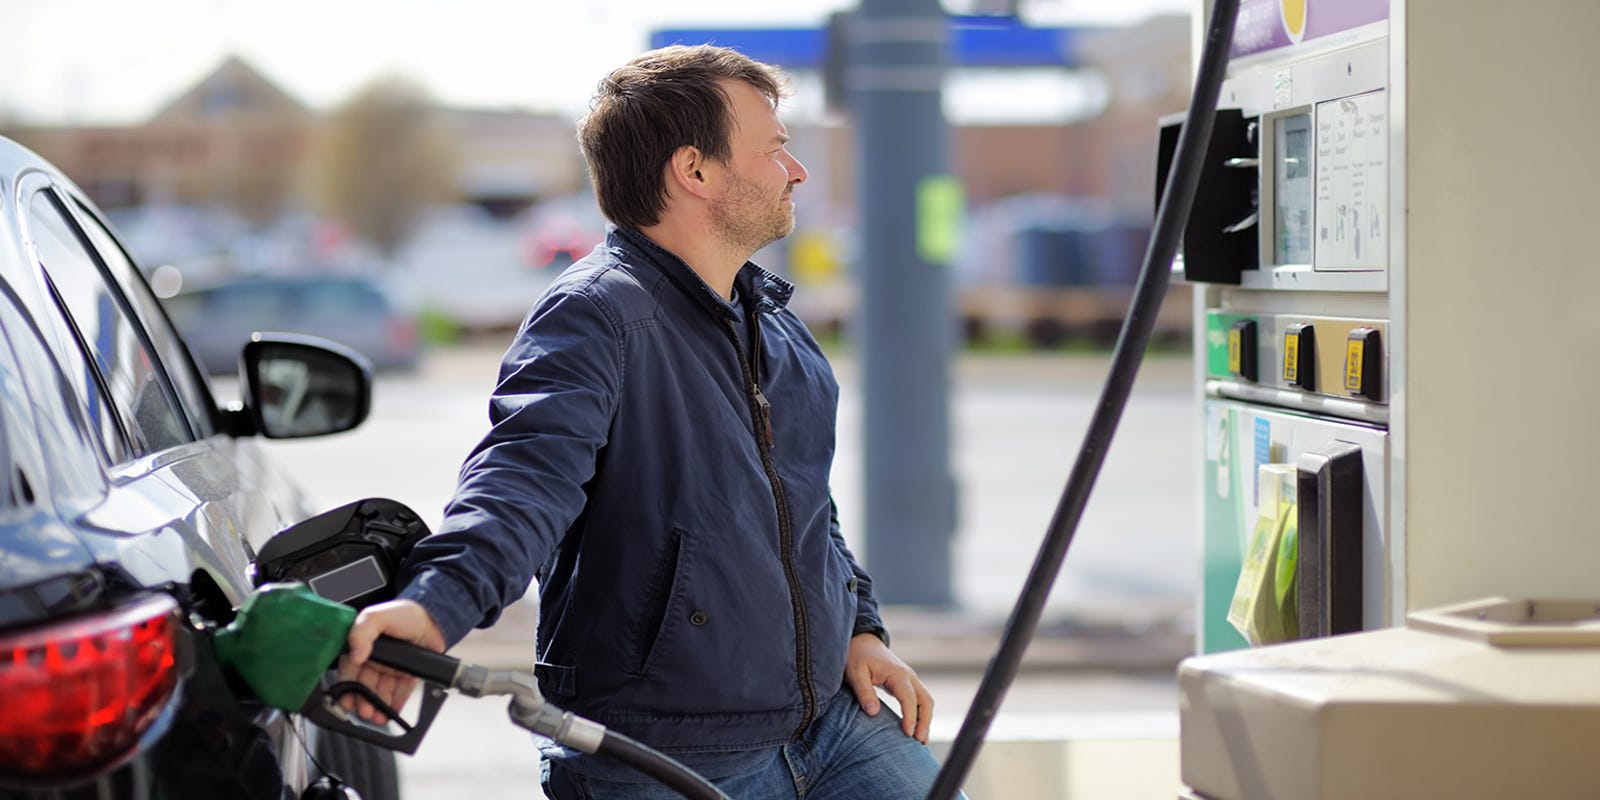 Gas prices to rise as winter storm rages, shutting refineries, stores and delaying shipments. Is $3 fuel coming? - USA TODAY